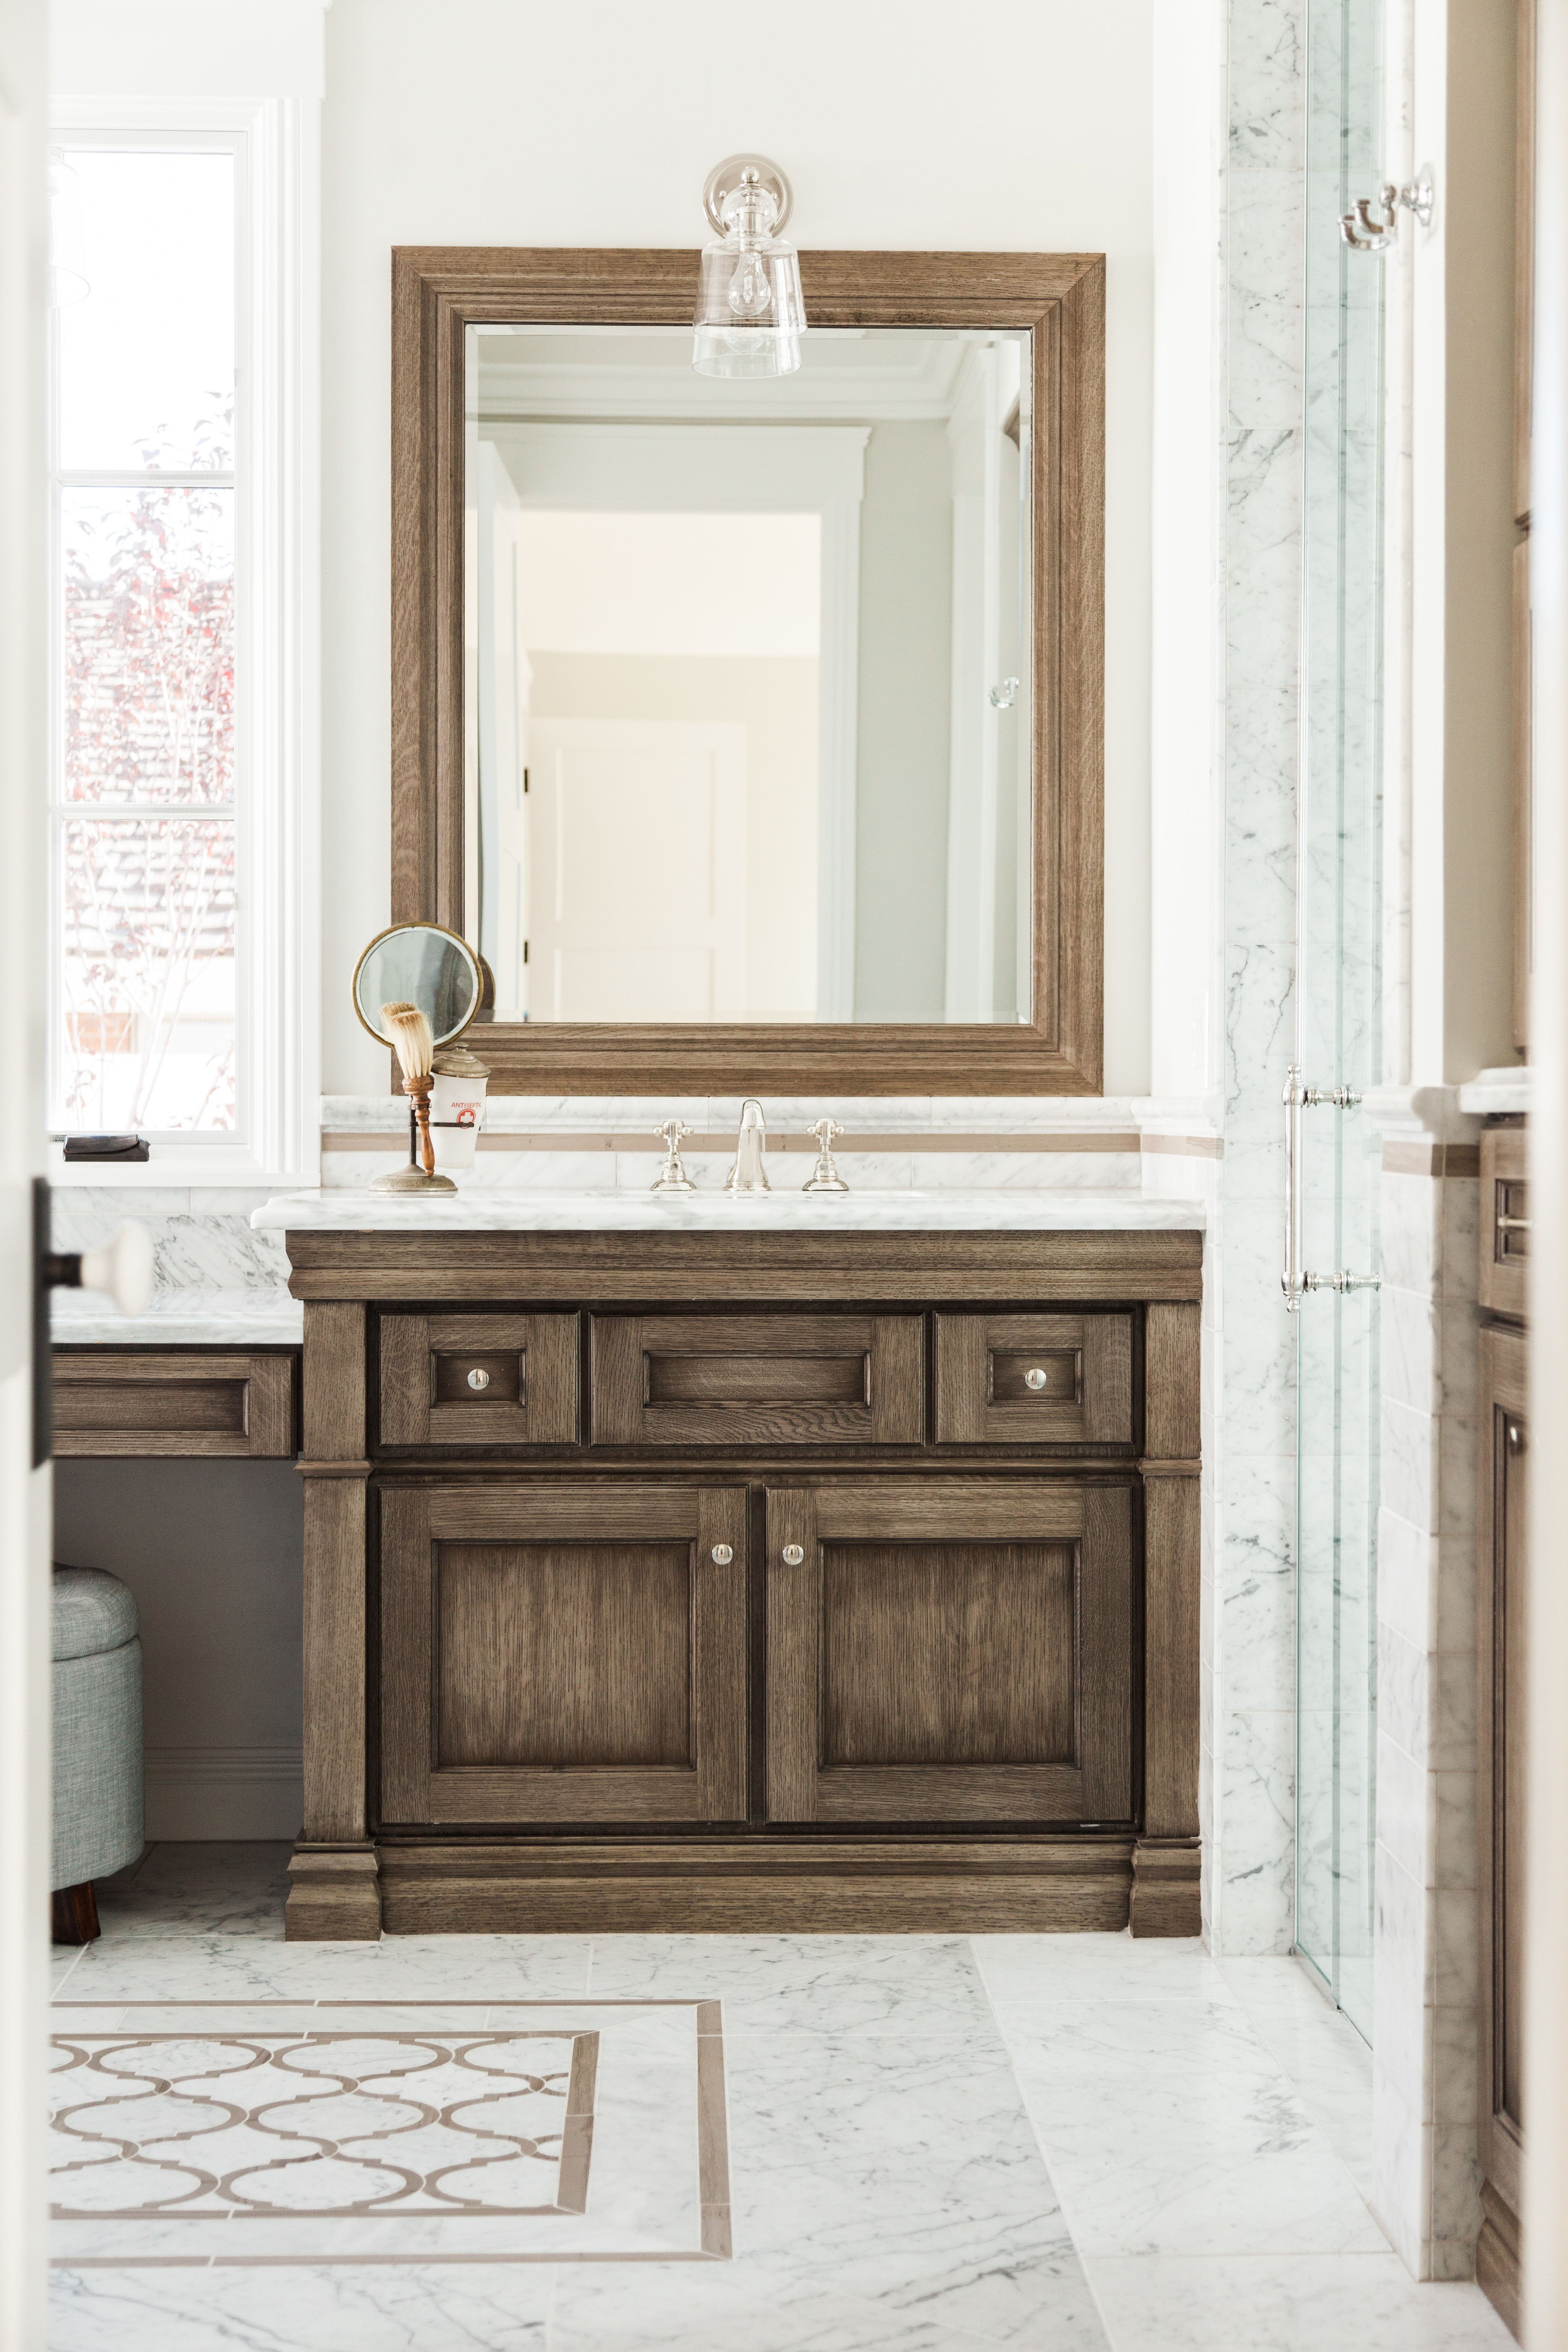 Custom Bath Vanity With Dark Wood Grain, Marble Countertop And Floor - By  Rafterhouse.